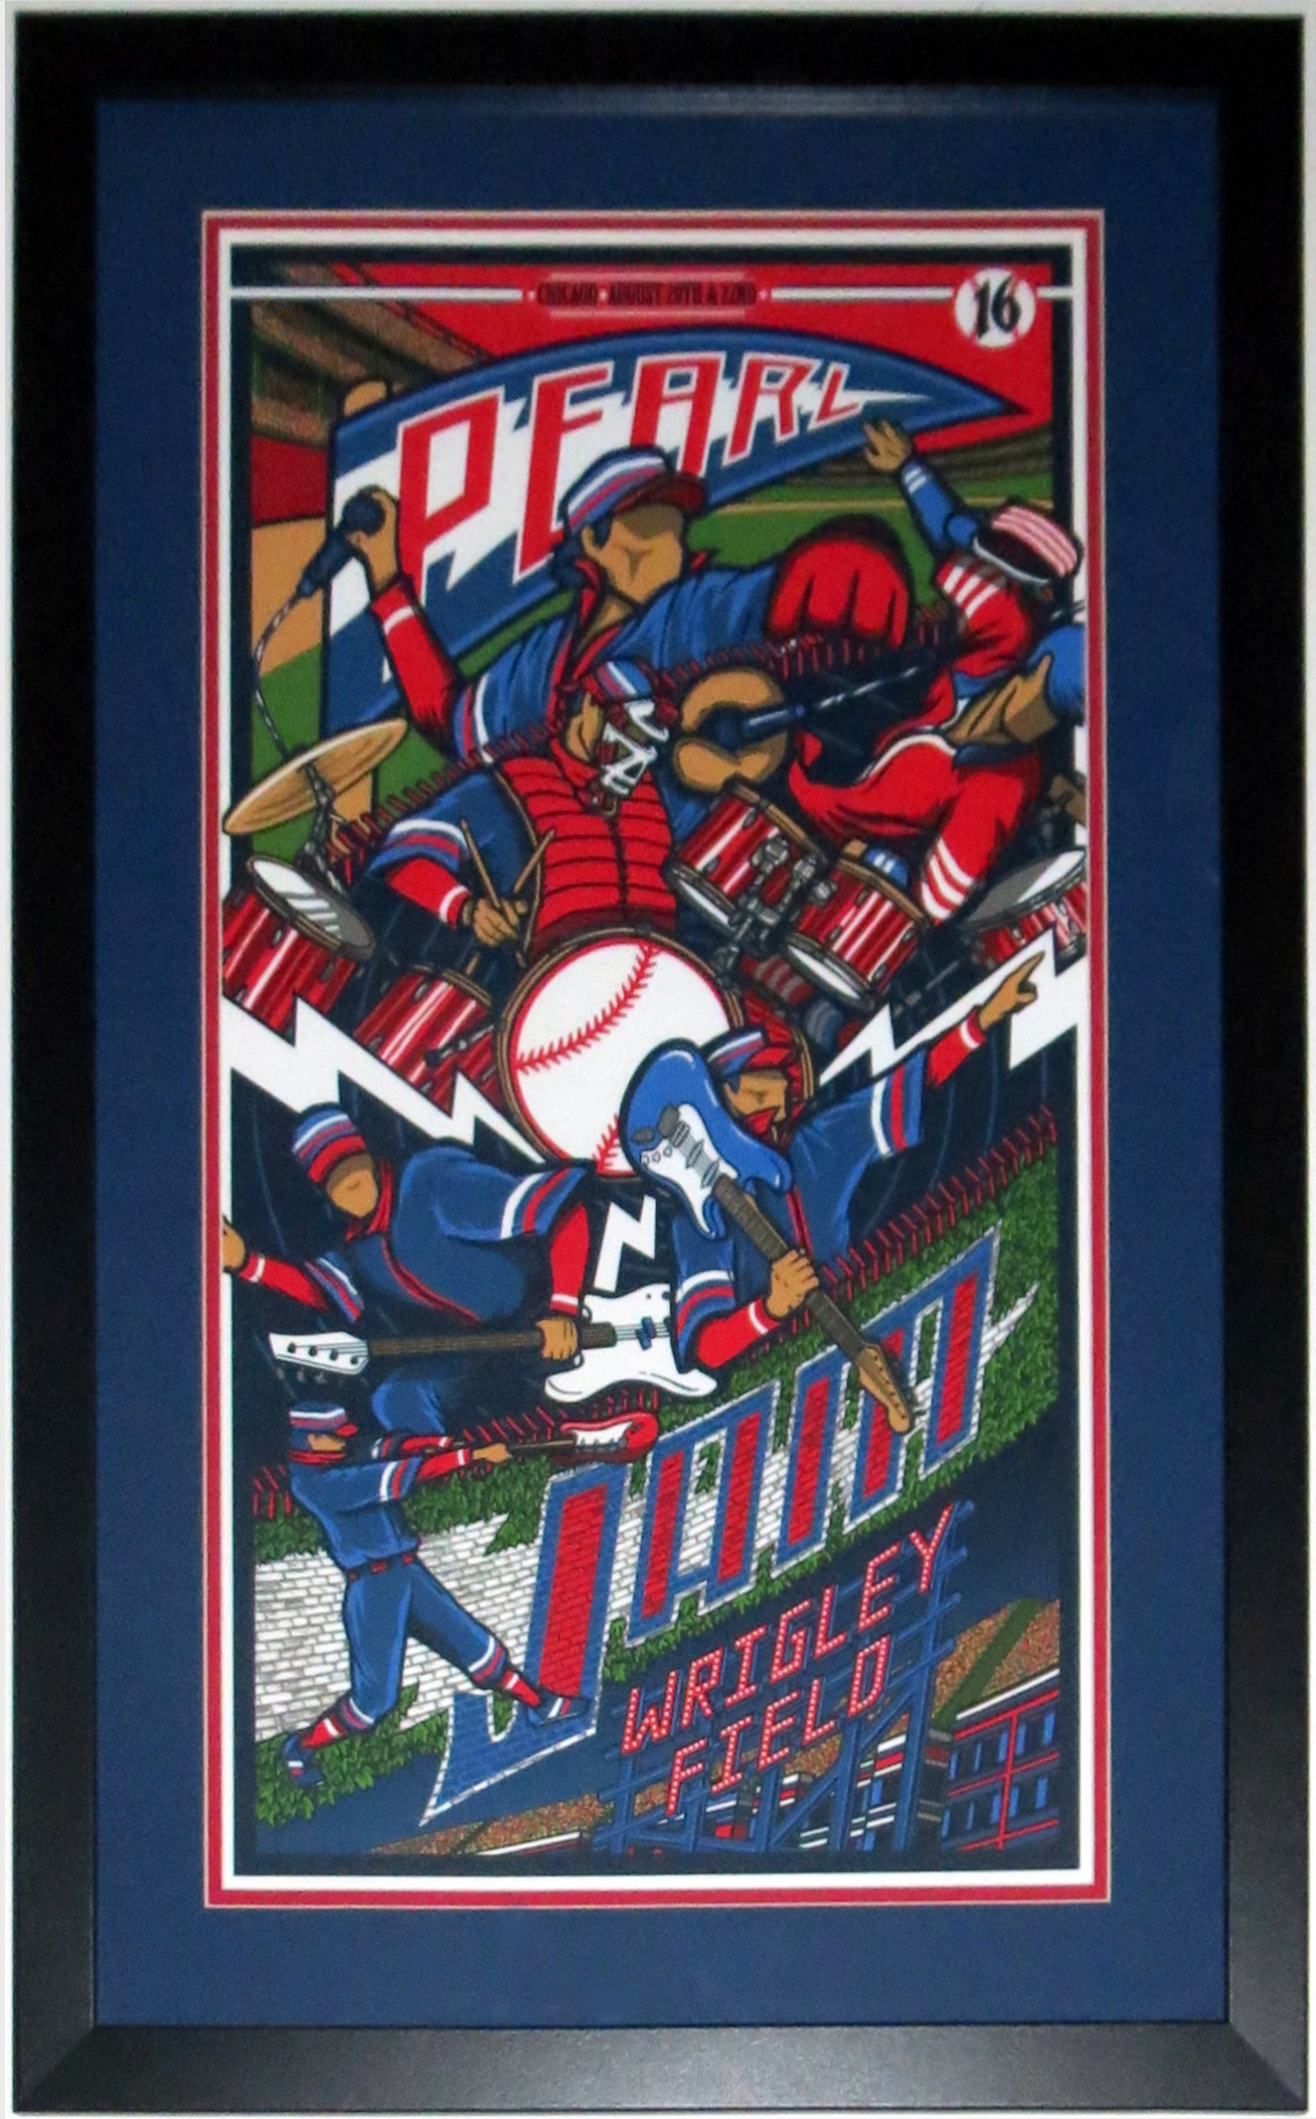 Pearl Jam Wrigley Field Chicago 2016 Tour Poster by Brad Klausen 8/20/16 -8/22/16 - Professionally Framed